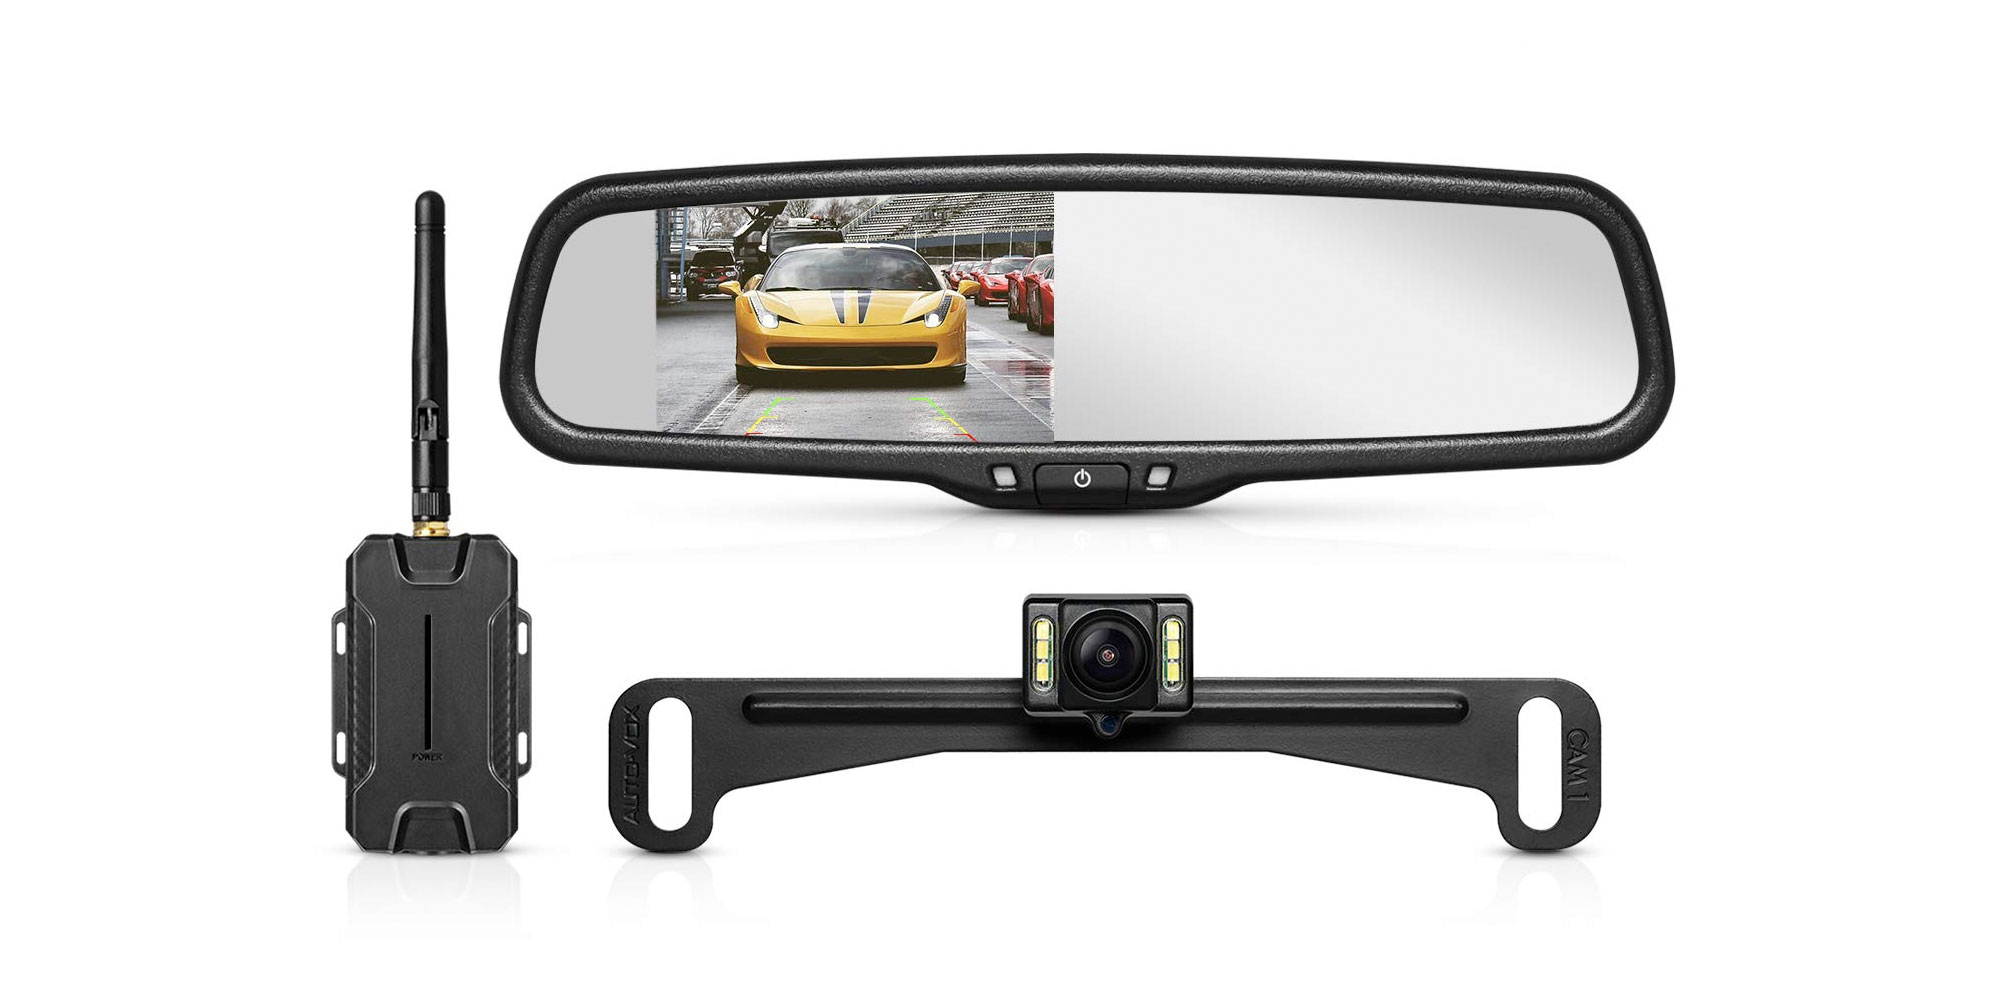 Master reverse parking w/ this wireless backup camera kit for $96.50 shipped (Reg. $140)